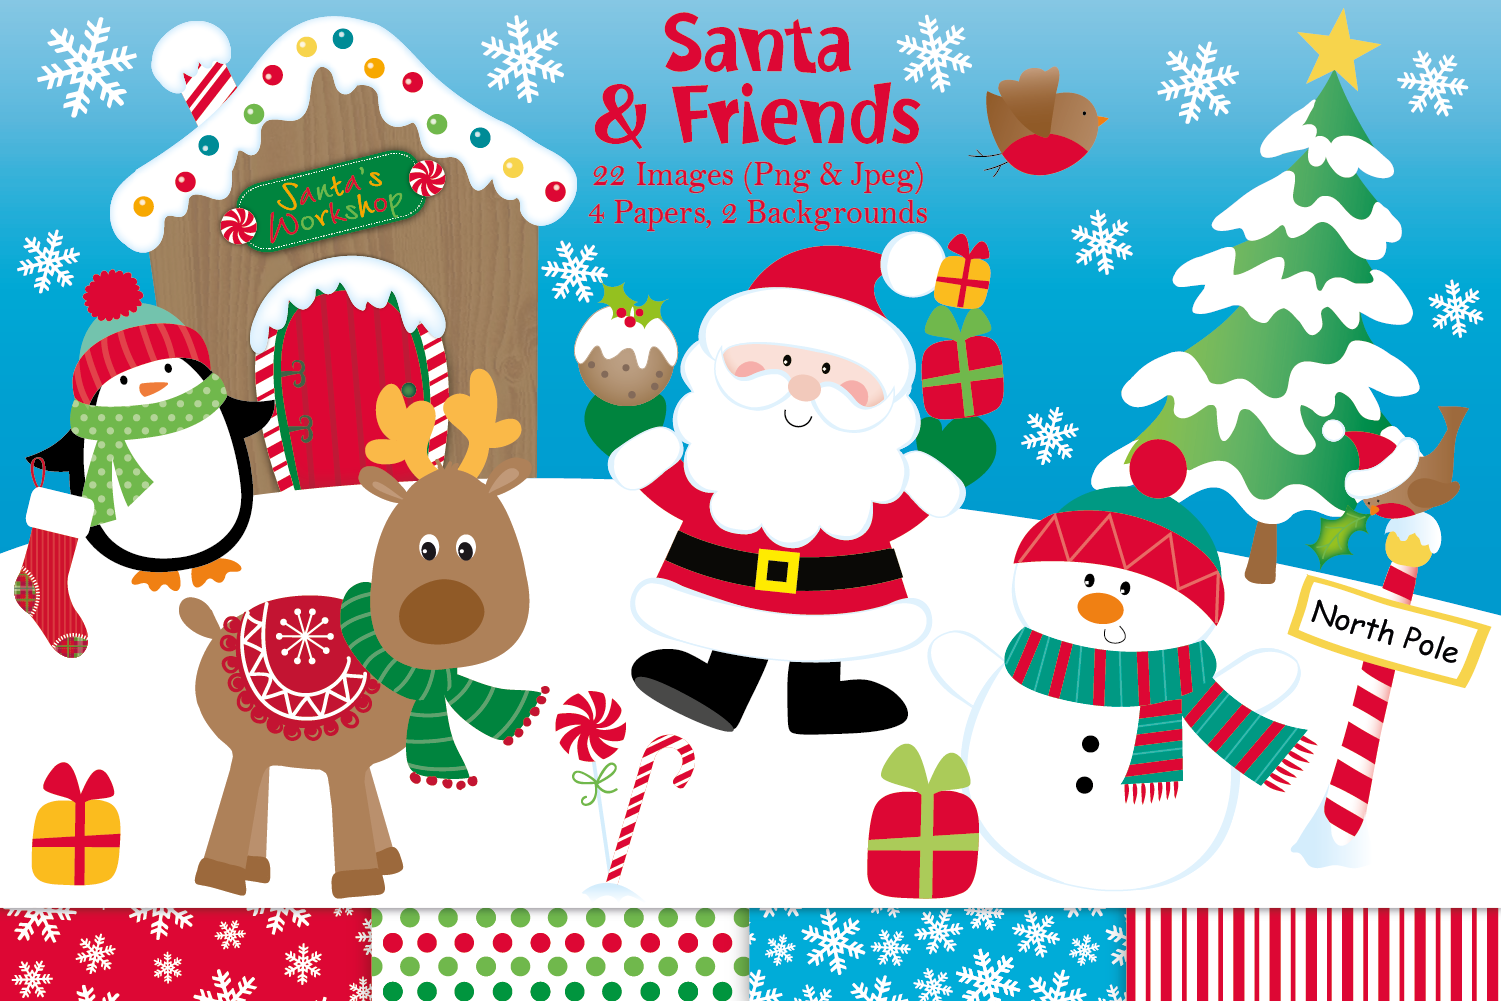 Christmas Illustrations.Christmas Clipart Christmas Graphics Illustrations Santa